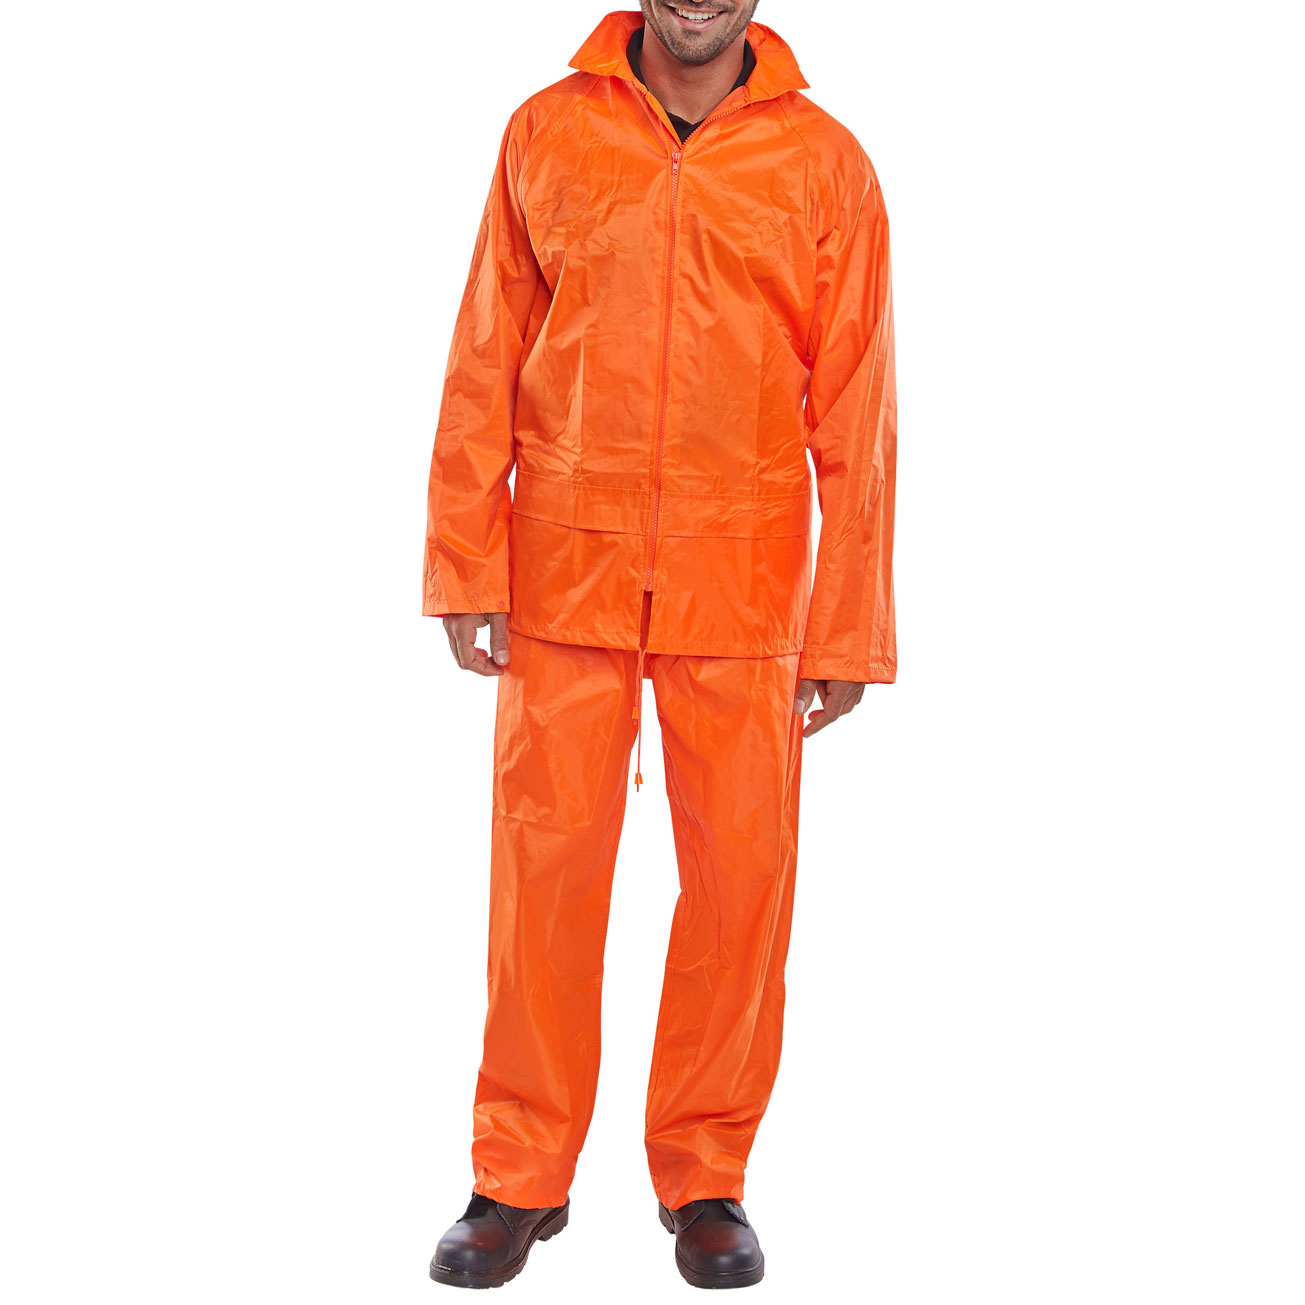 B-Dri Weatherproof Suit Nylon Jacket and Trouser XL Orange Ref NBDSORXL Up to 3 Day Leadtime